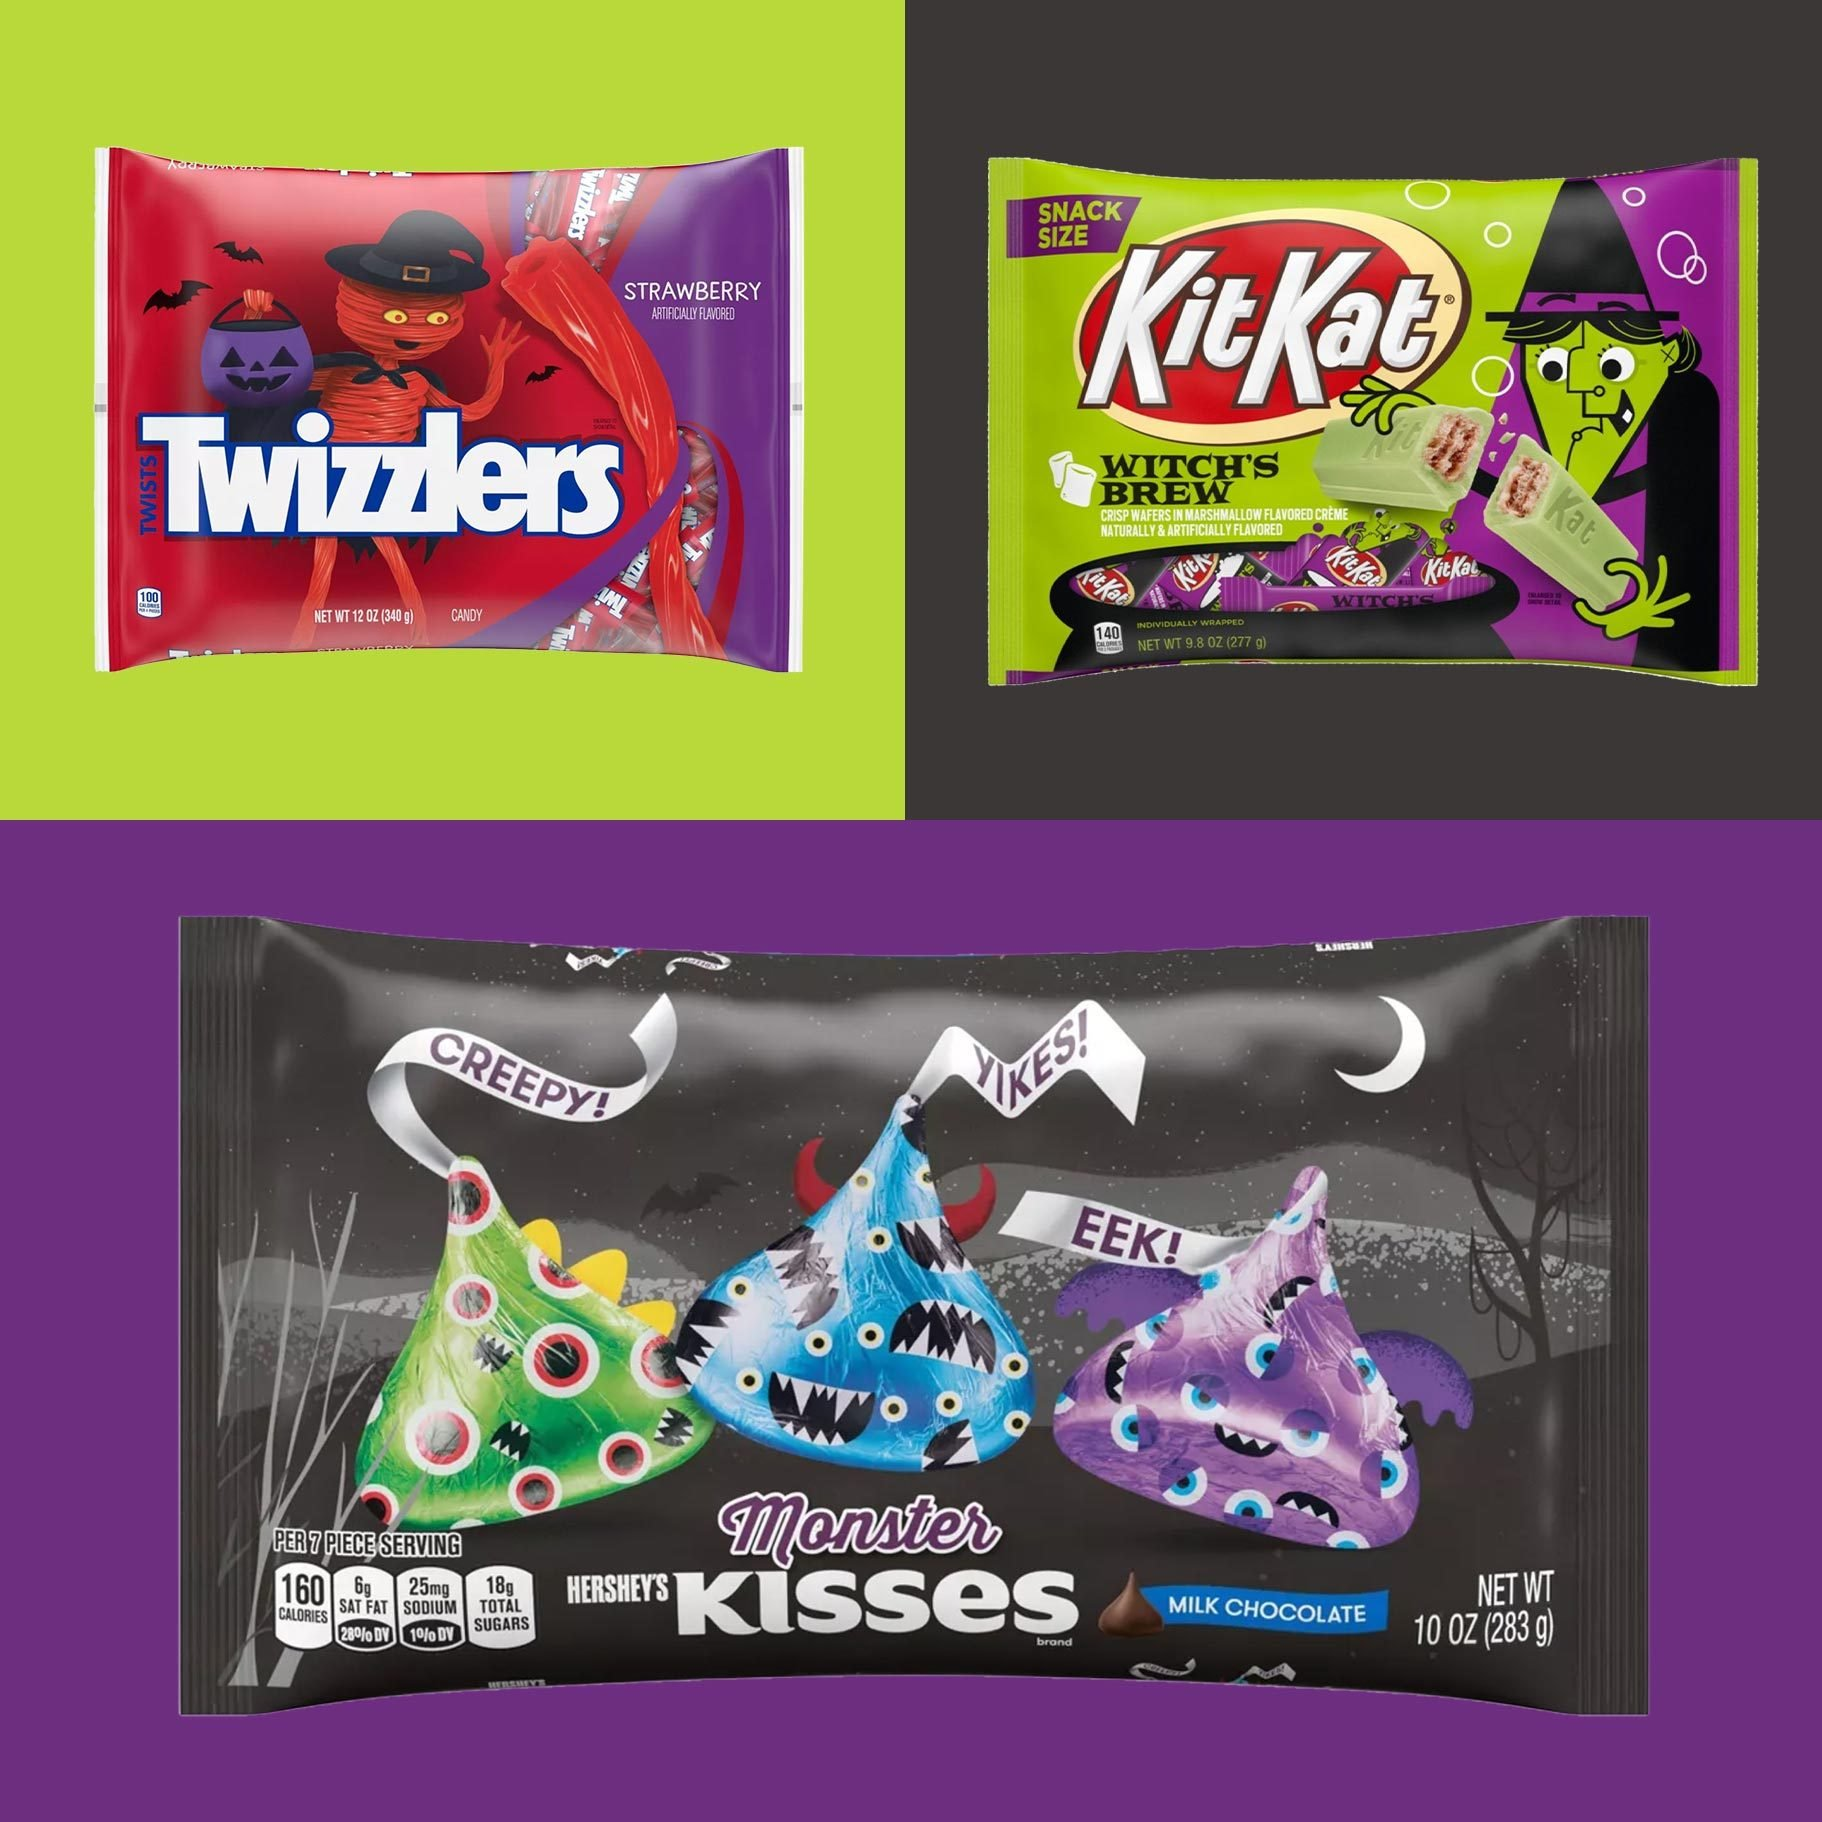 Halloween 2020 Deals Best Deals on Halloween Candy for 2020 | Reader's Digest